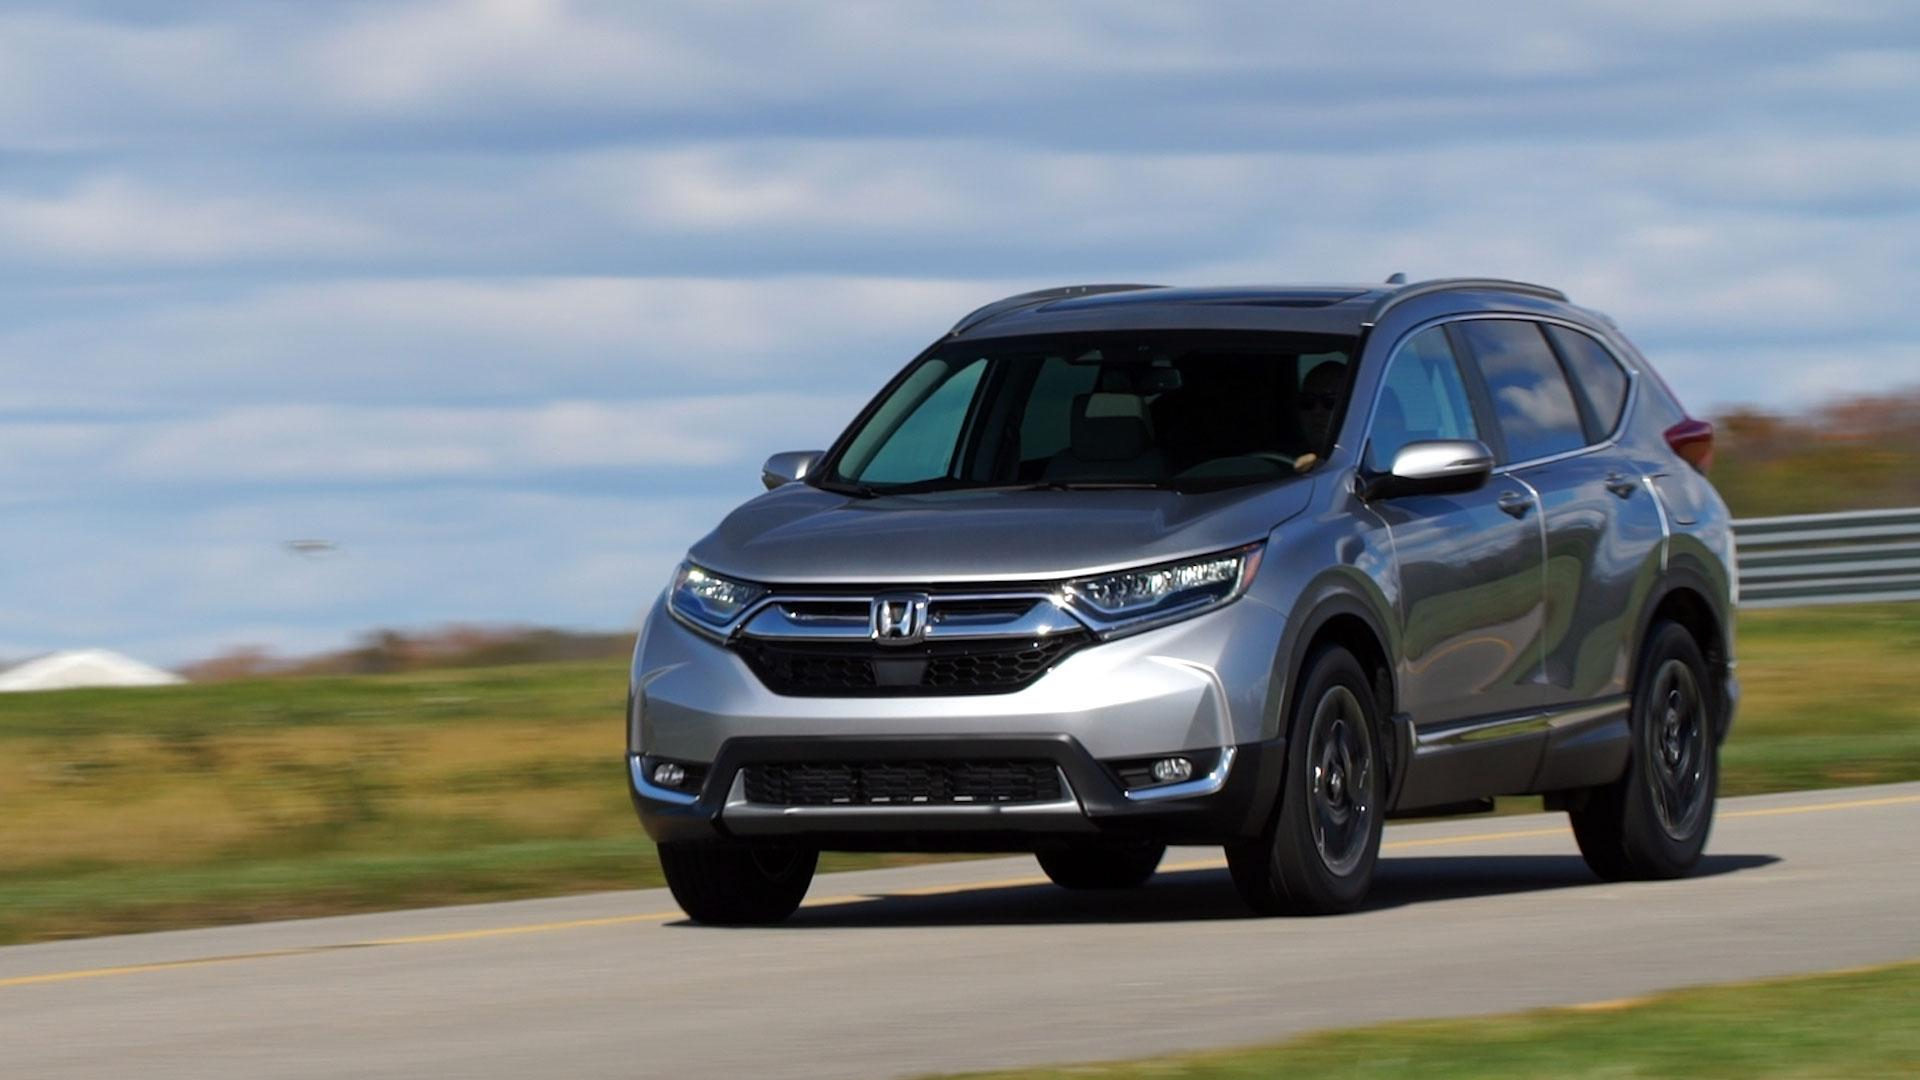 Used Honda Hrv >> 2017 Honda CR-V Is Bigger and Better Equipped - Consumer Reports